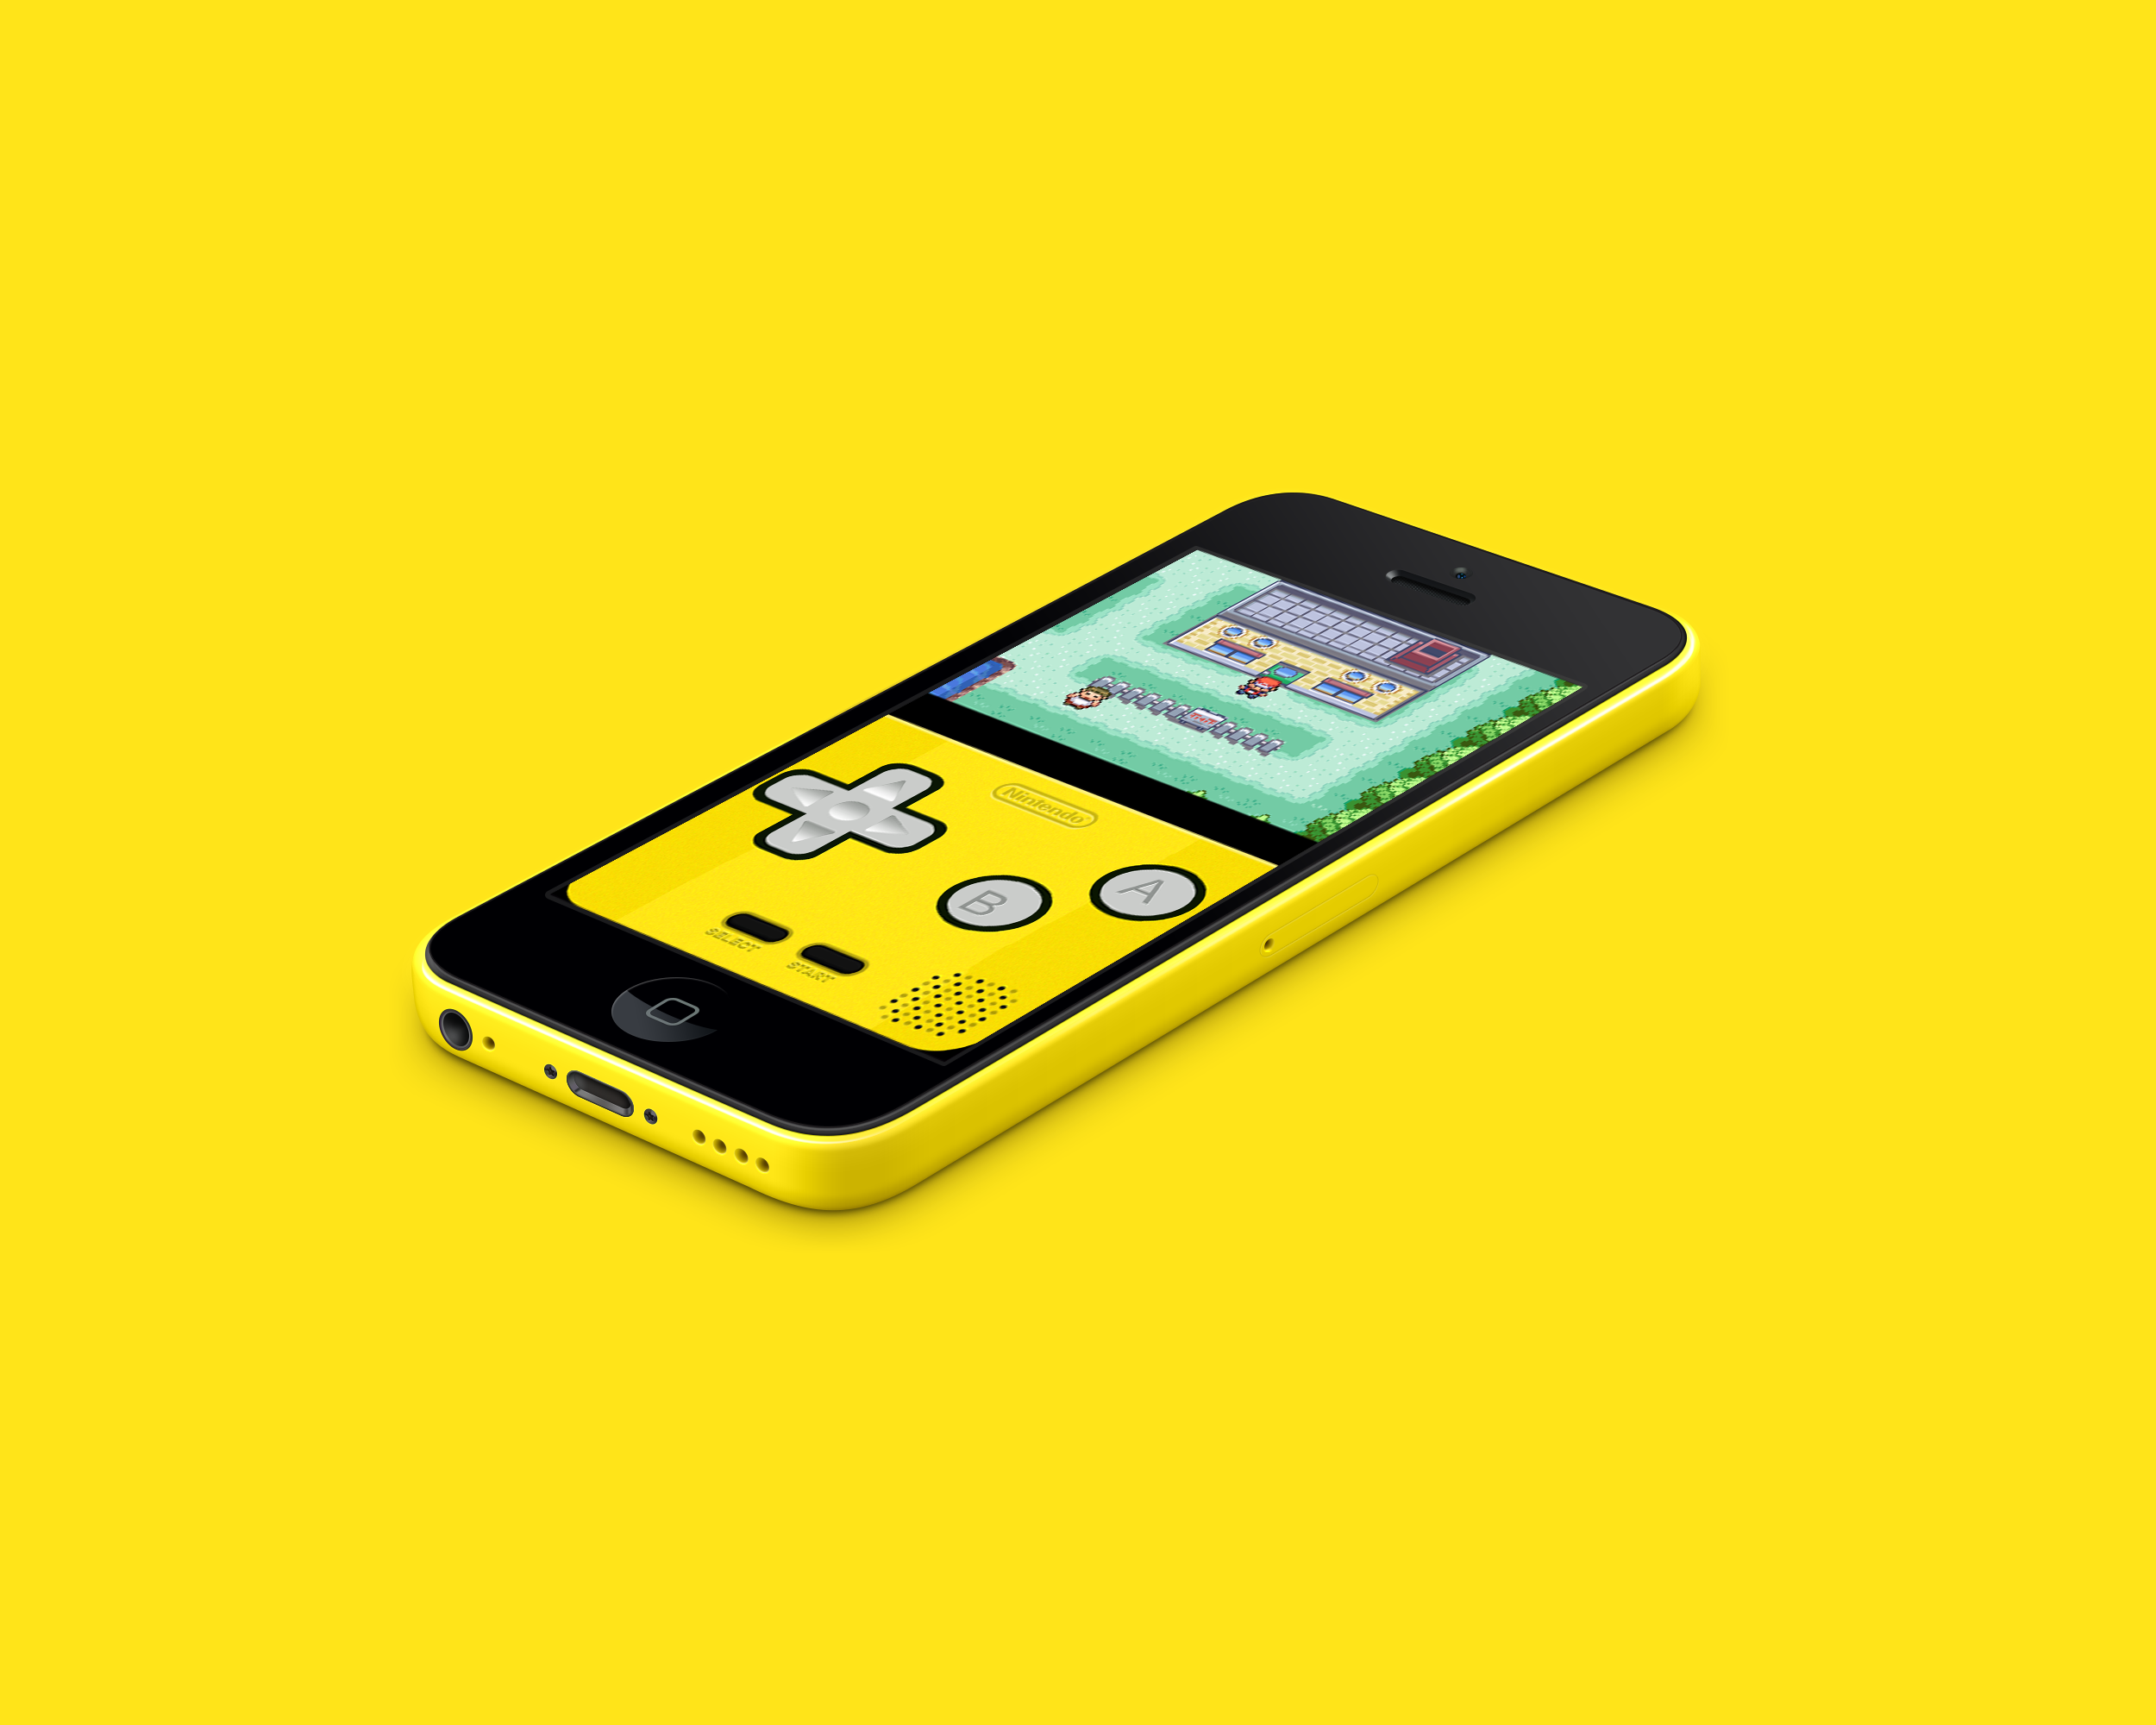 iphone 5c yellow iphone 5c gba yellow by vitalovitalo on deviantart 11151